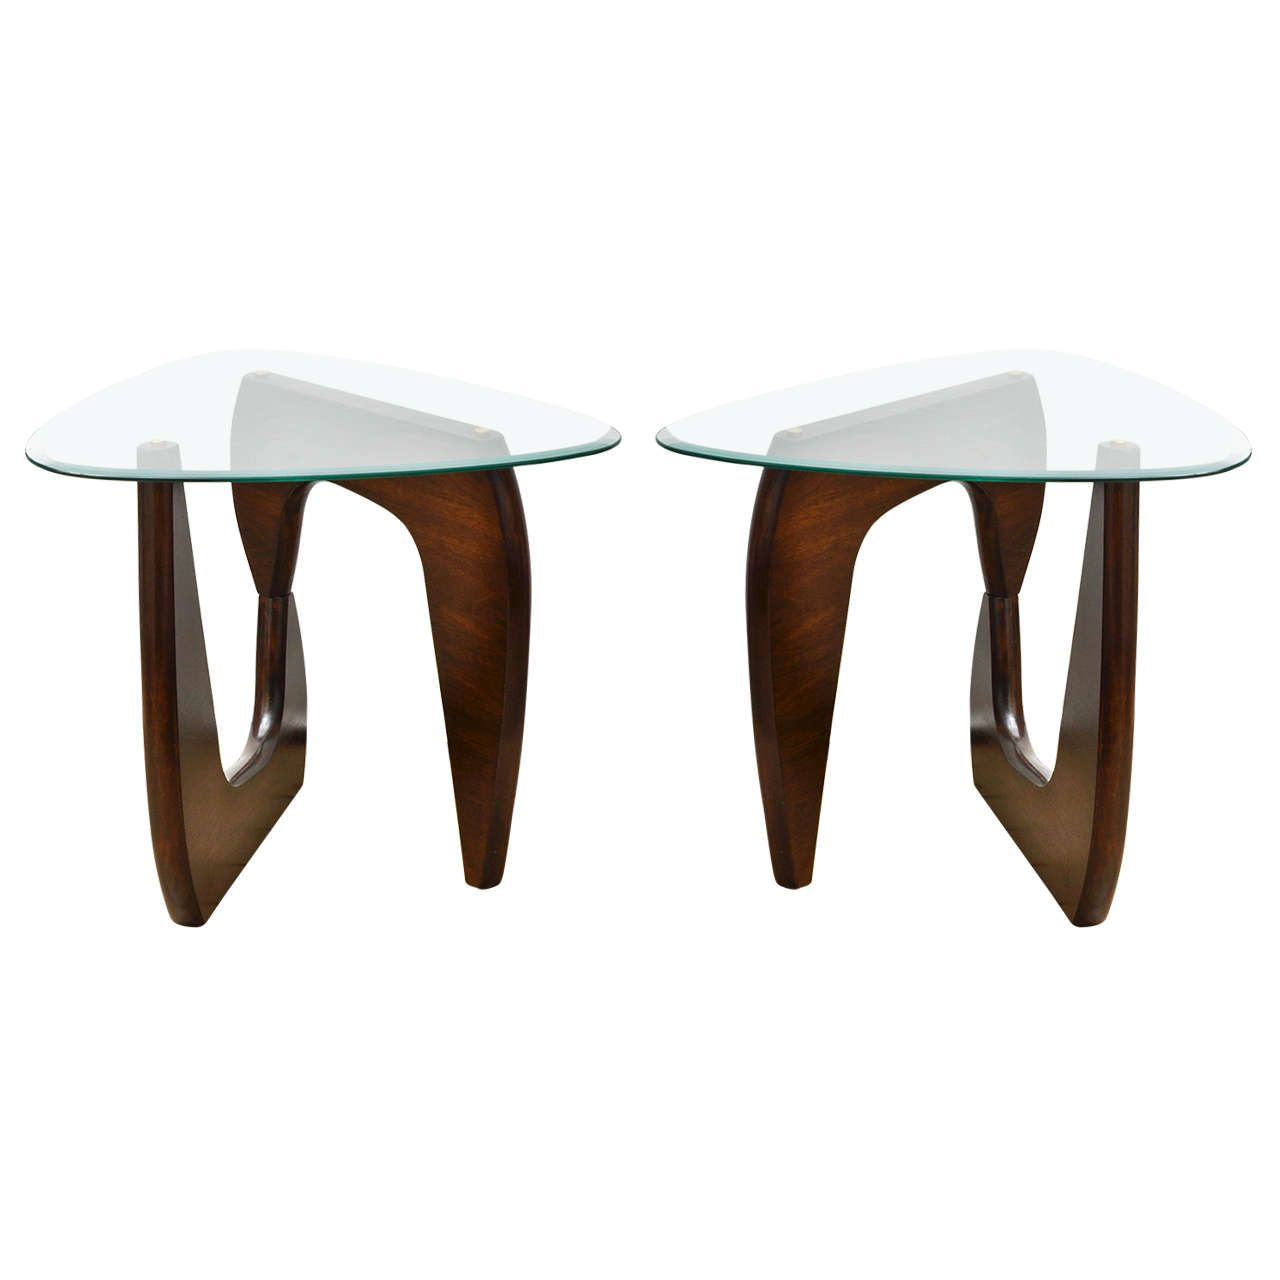 Bartisch Rustikal Pair Of Wood Base Glass Triangular Top Tables In The Style Of